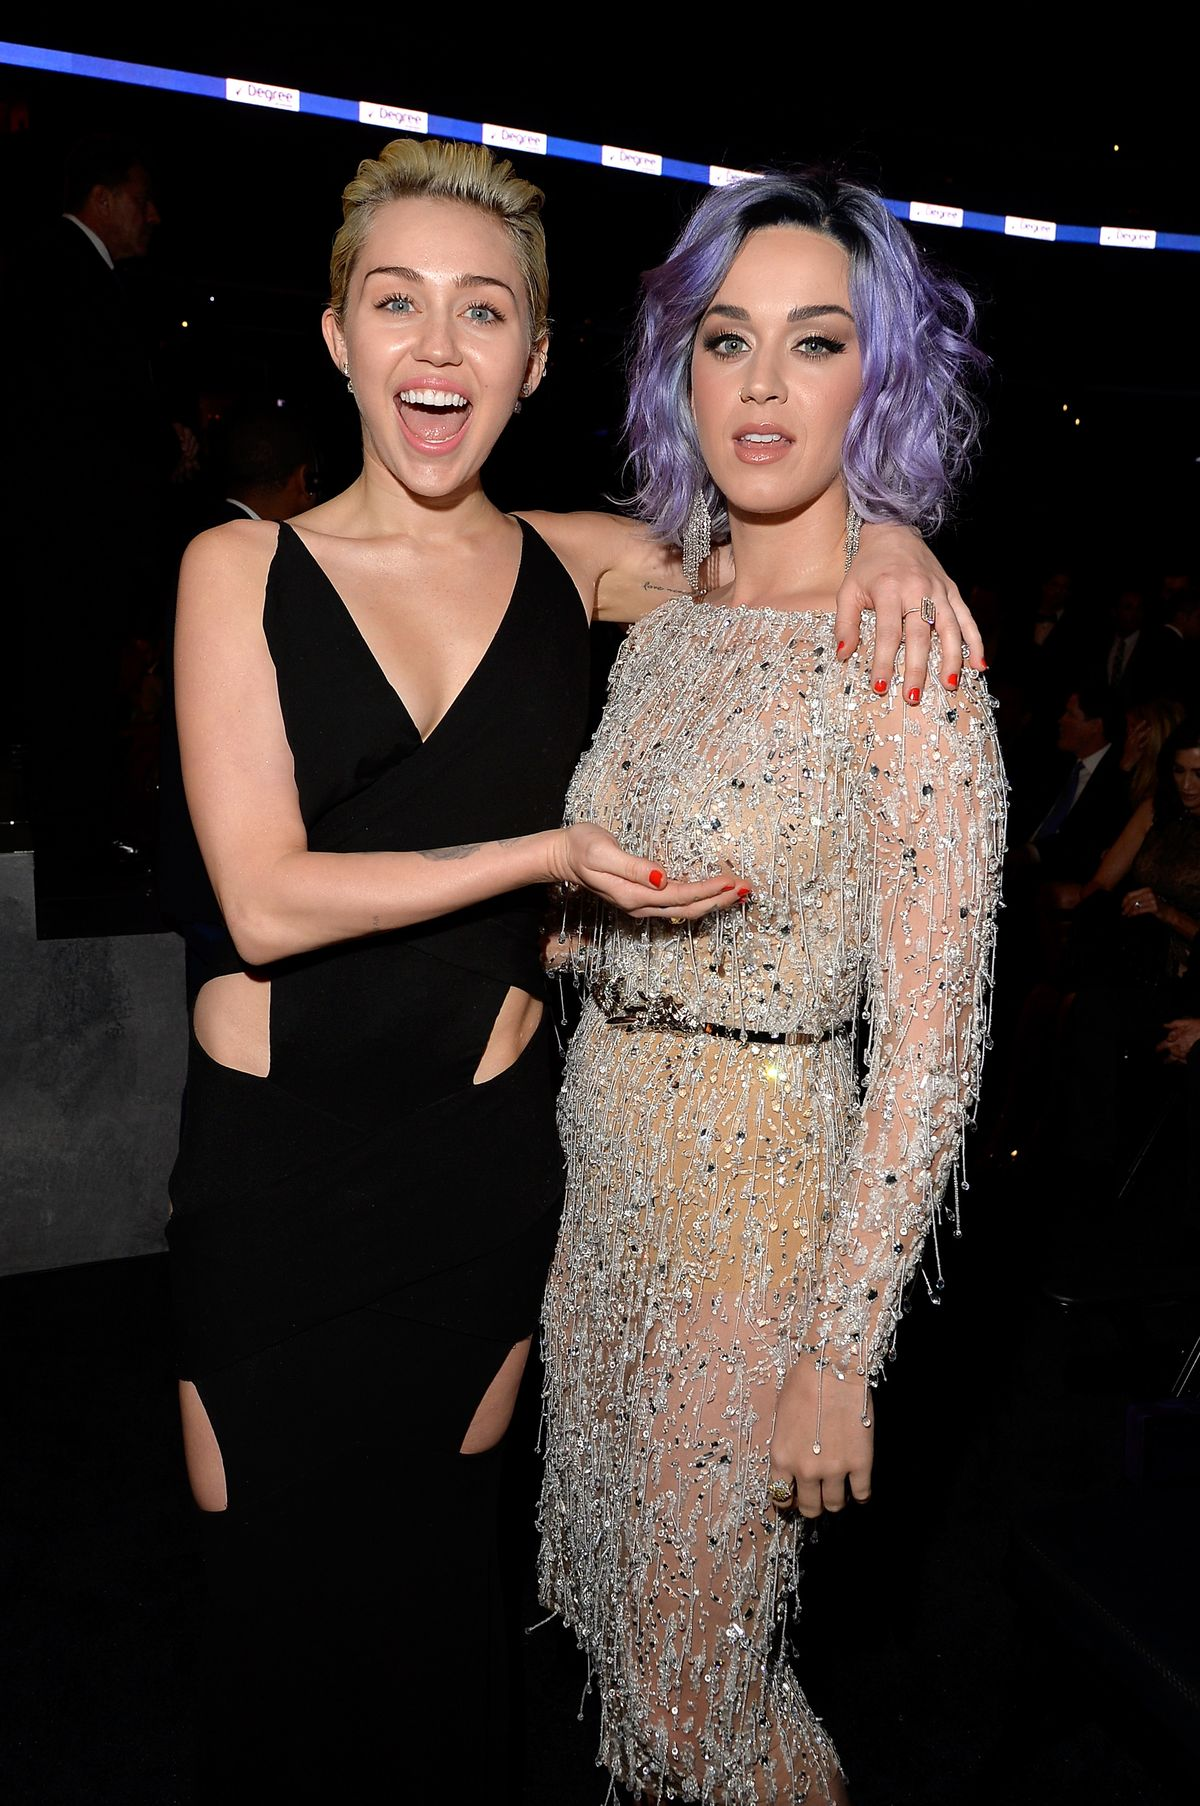 Miley Cyrus Cups Katy Perry's Boob At The 57th Annual GRAMMY Awards